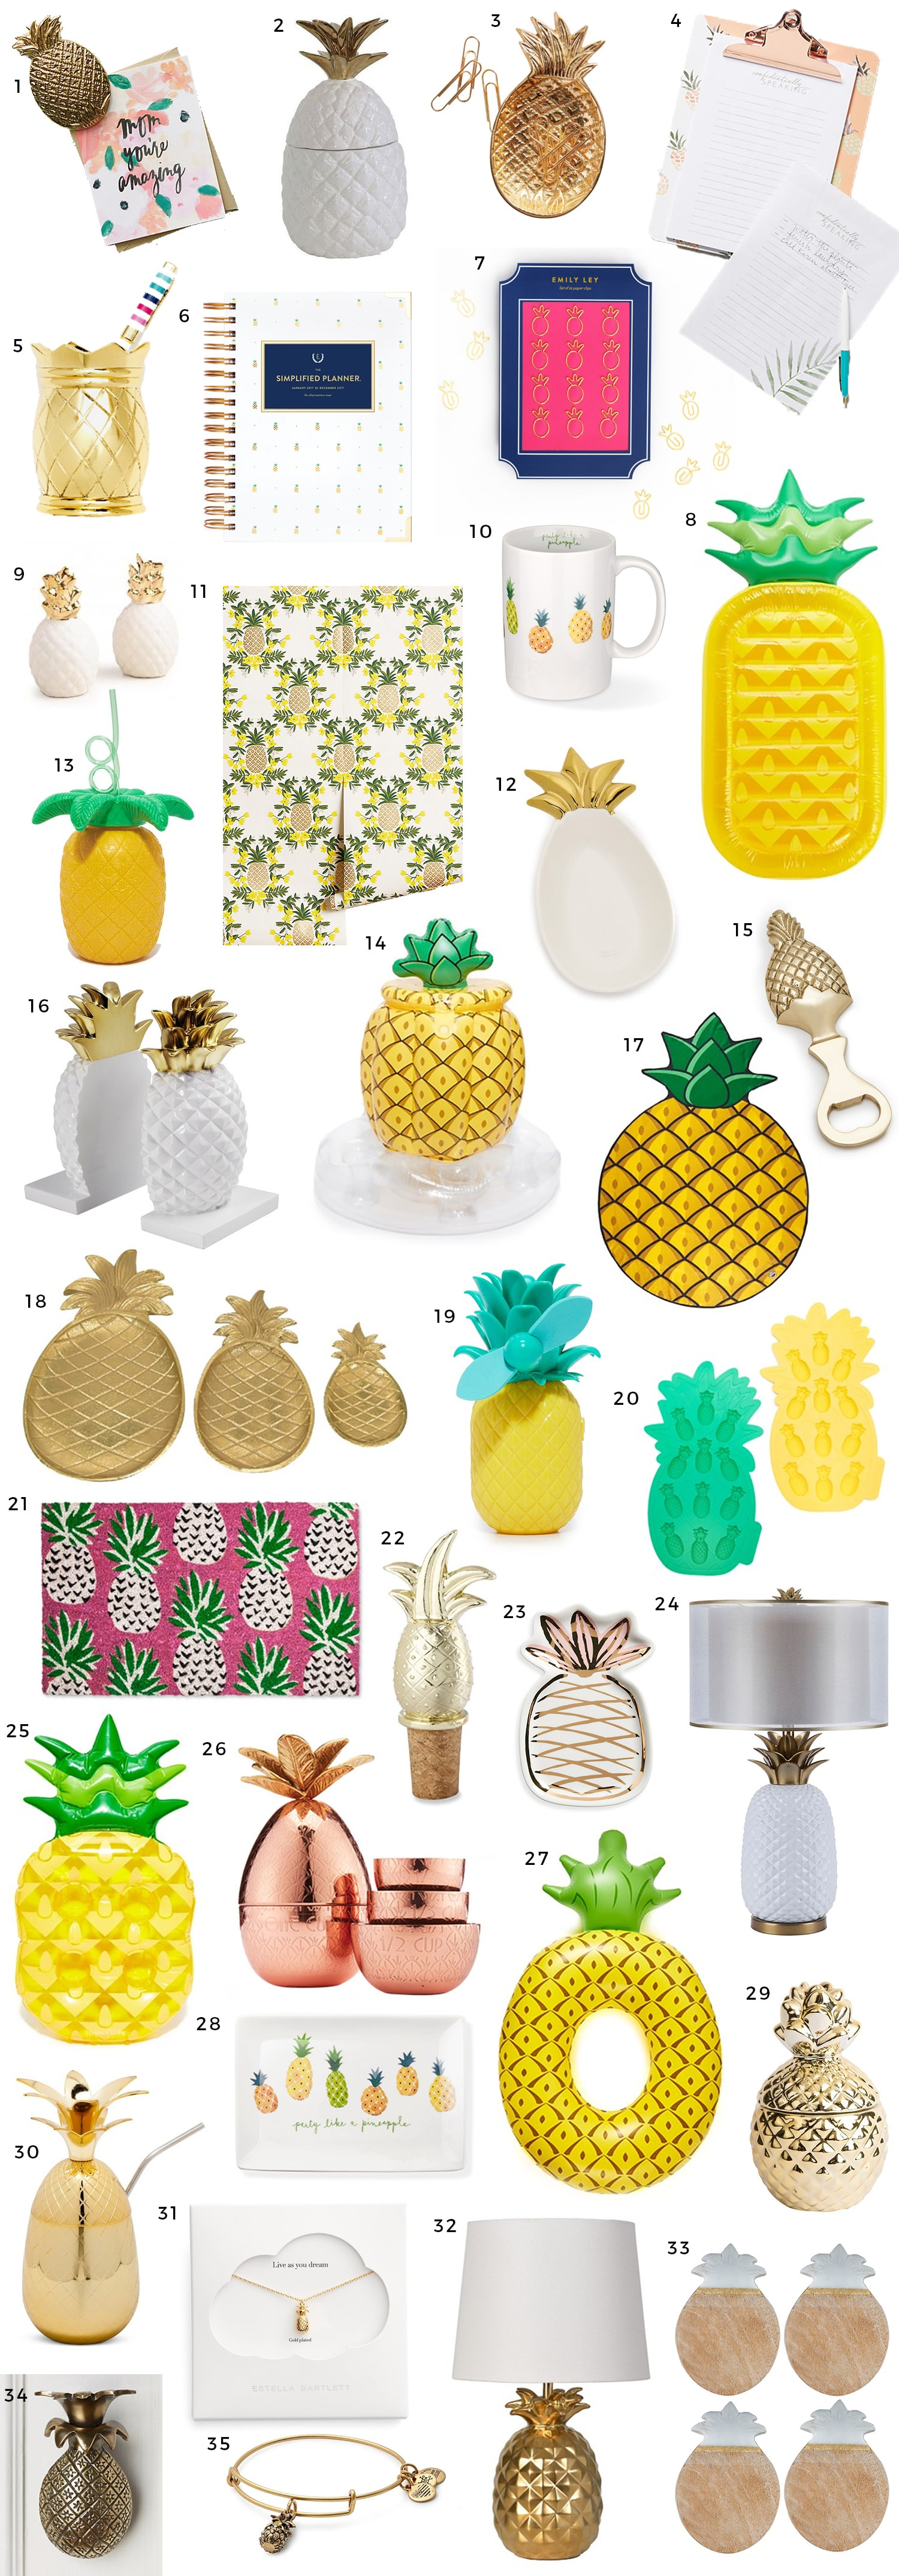 The Best Pineapple Home Decor Office And Gift Ideas Shopbop Spring Sale